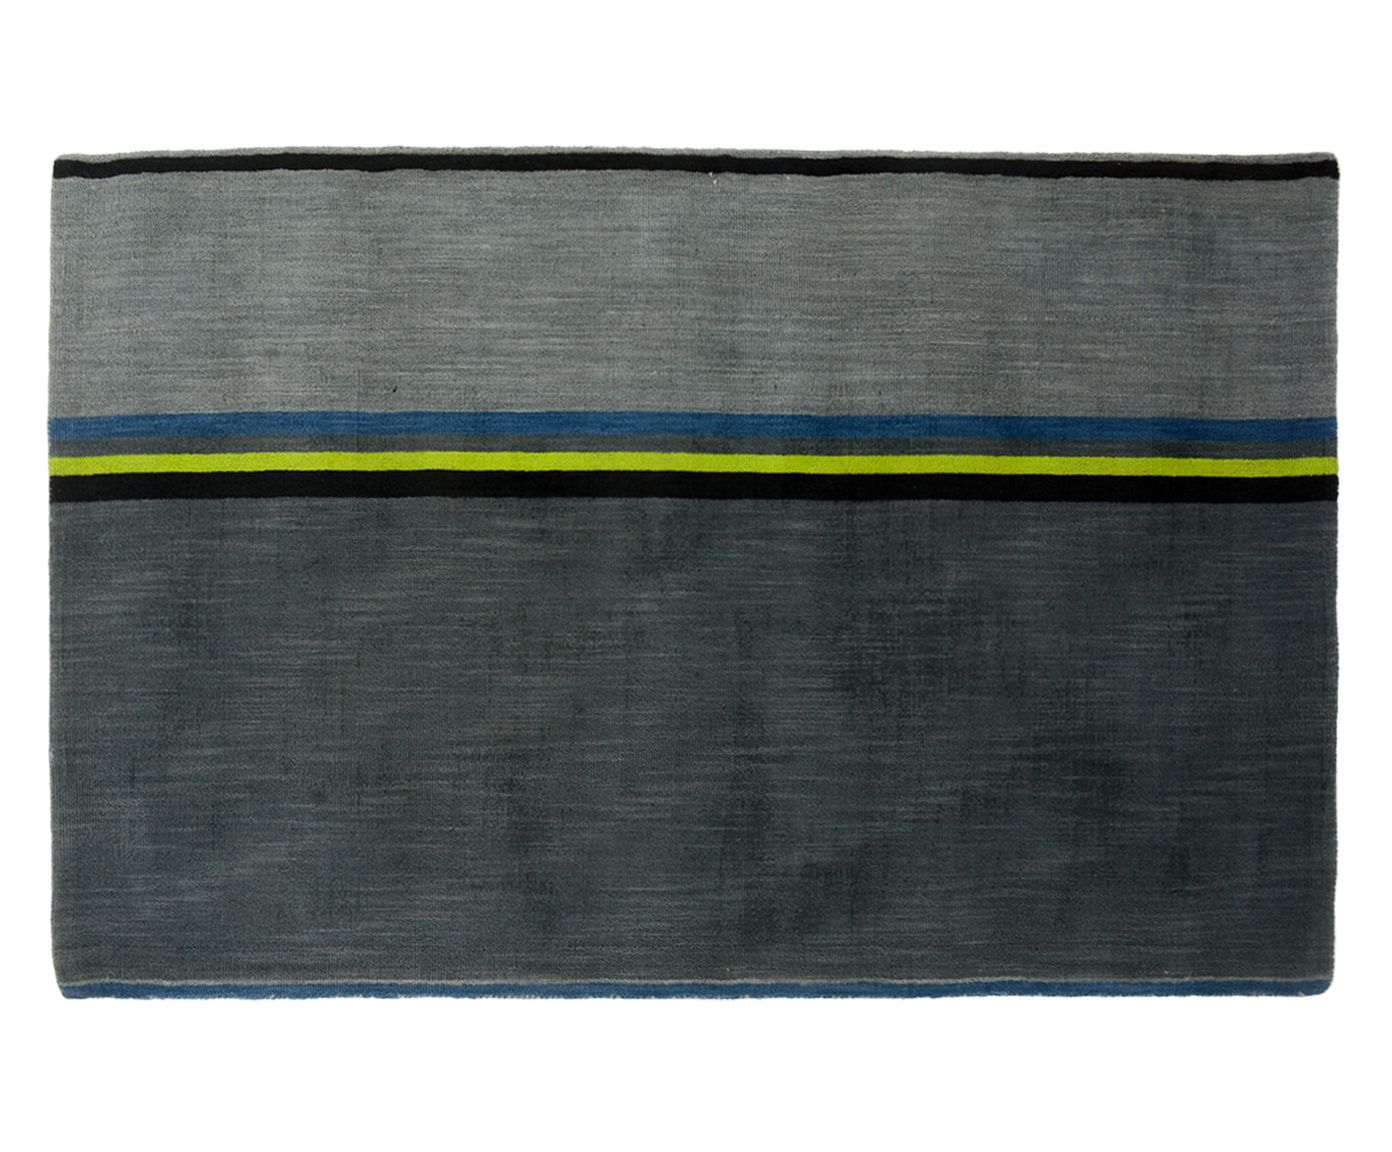 Tapete Artesanal Indiano Anant - 152X242cm | Westwing.com.br